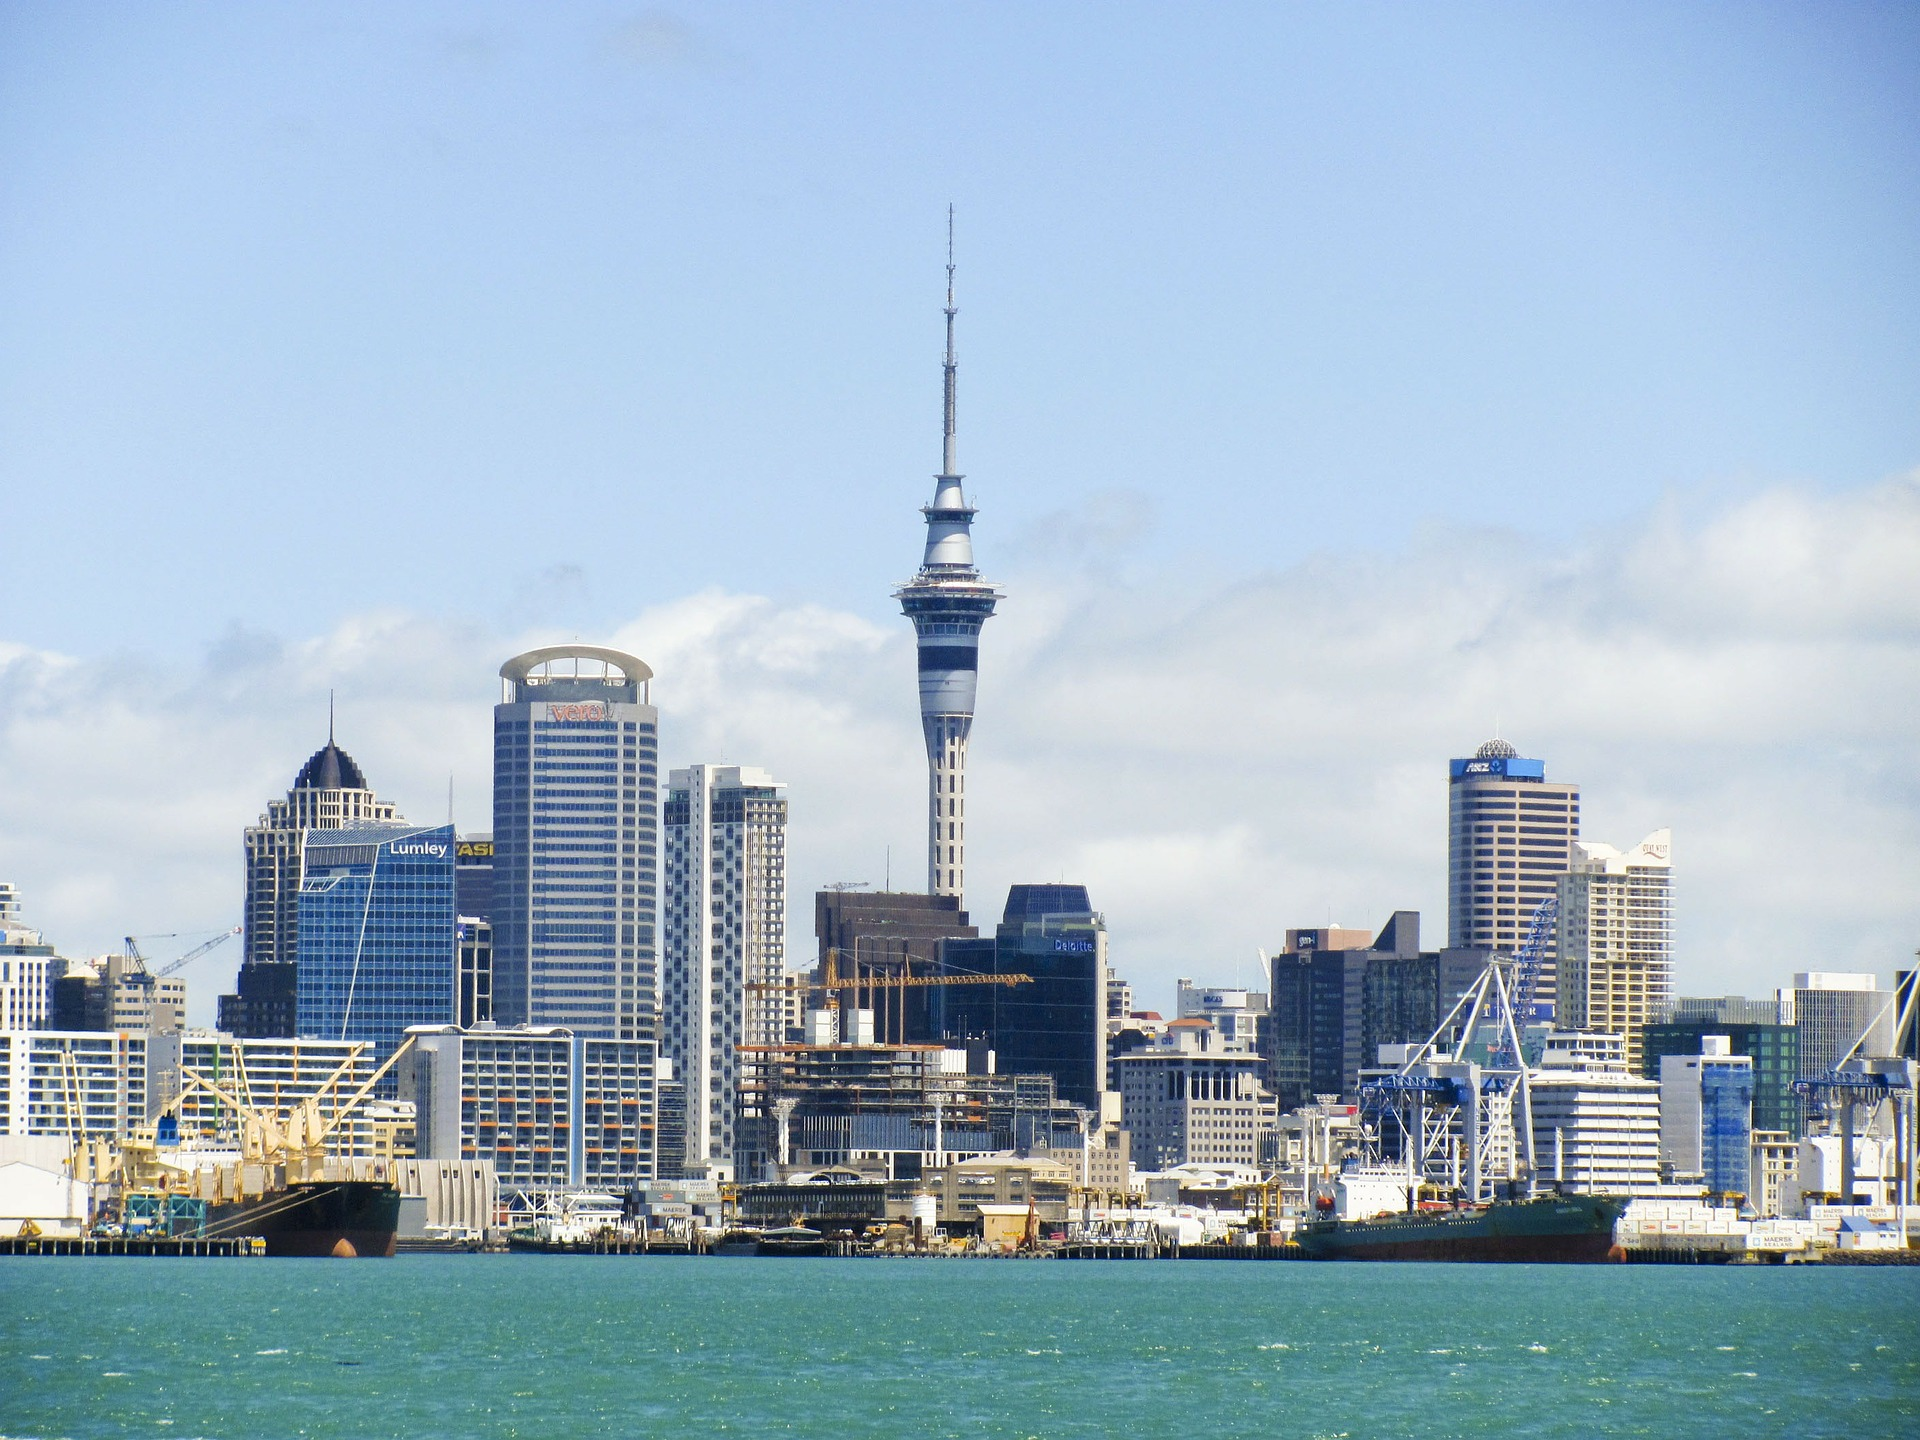 NEW ZEALAND ERGONOMICS & ENVIRONMENTAL HEALTH AND SAFETY REQUIREMENTS